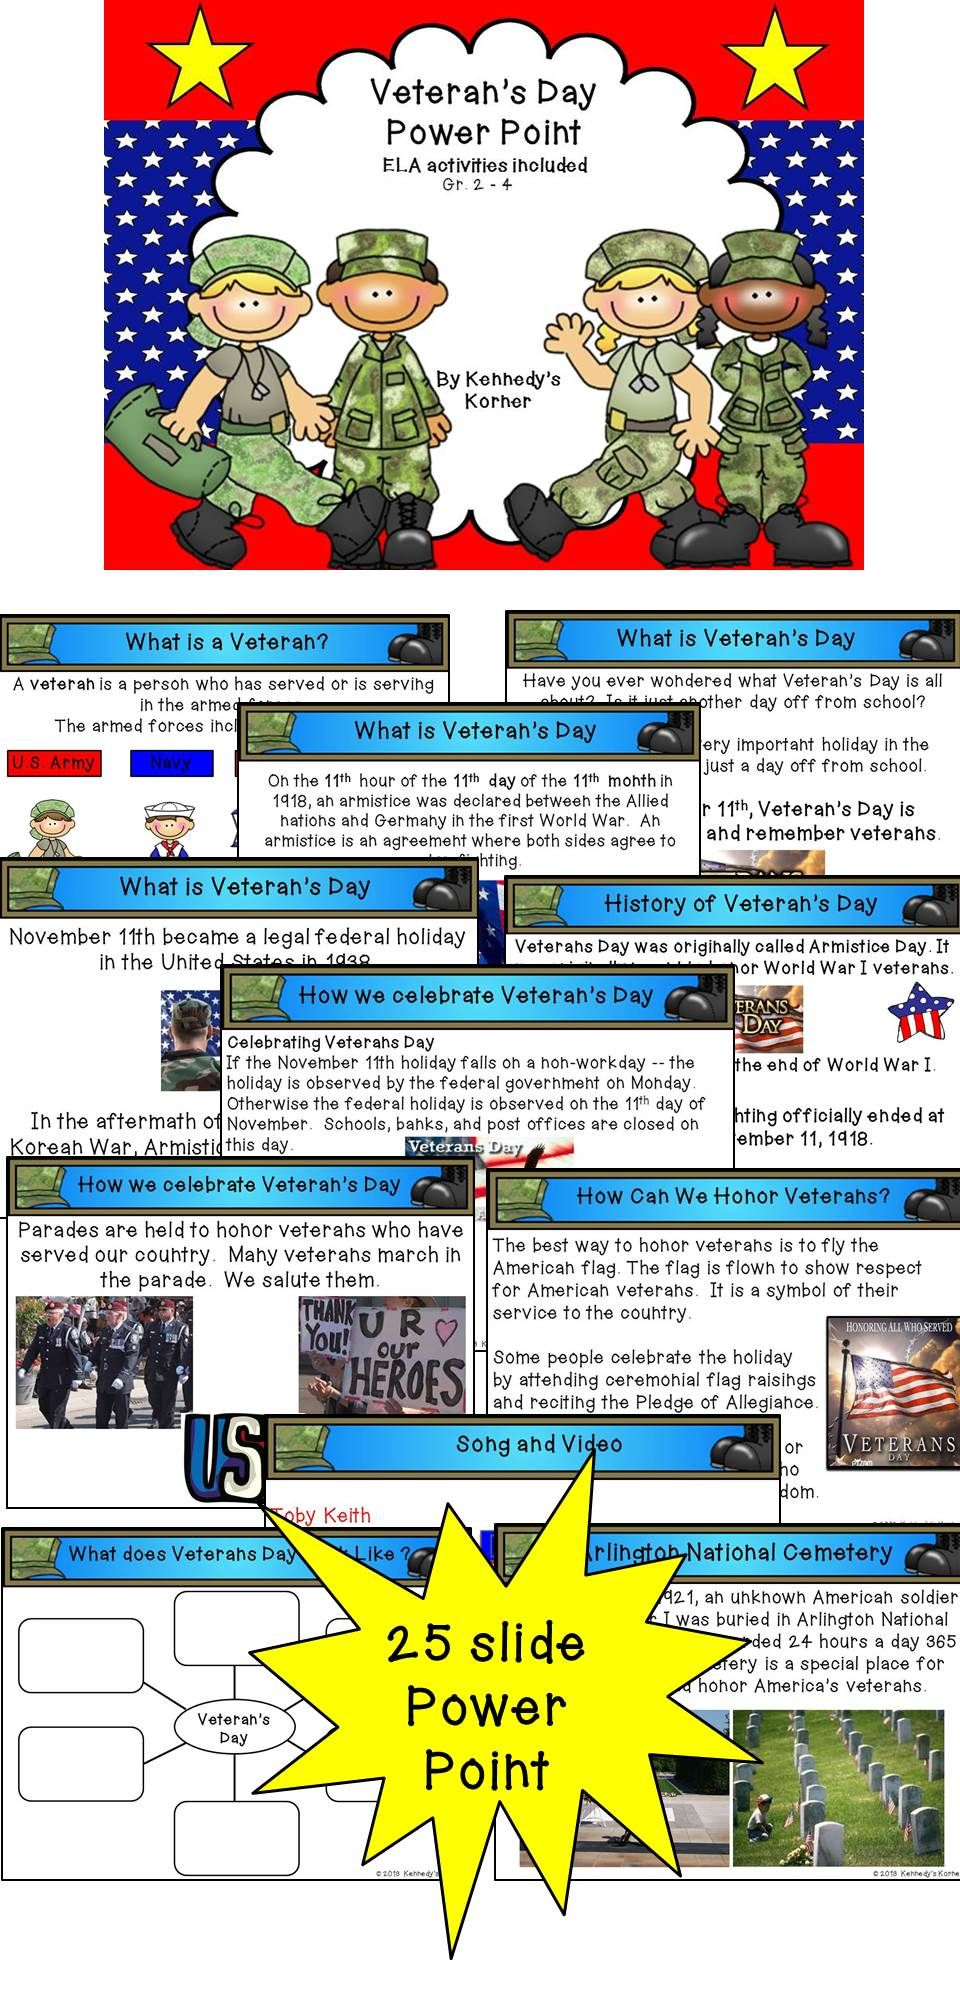 Veterans Day Power Point ~ ELA Activities included ...